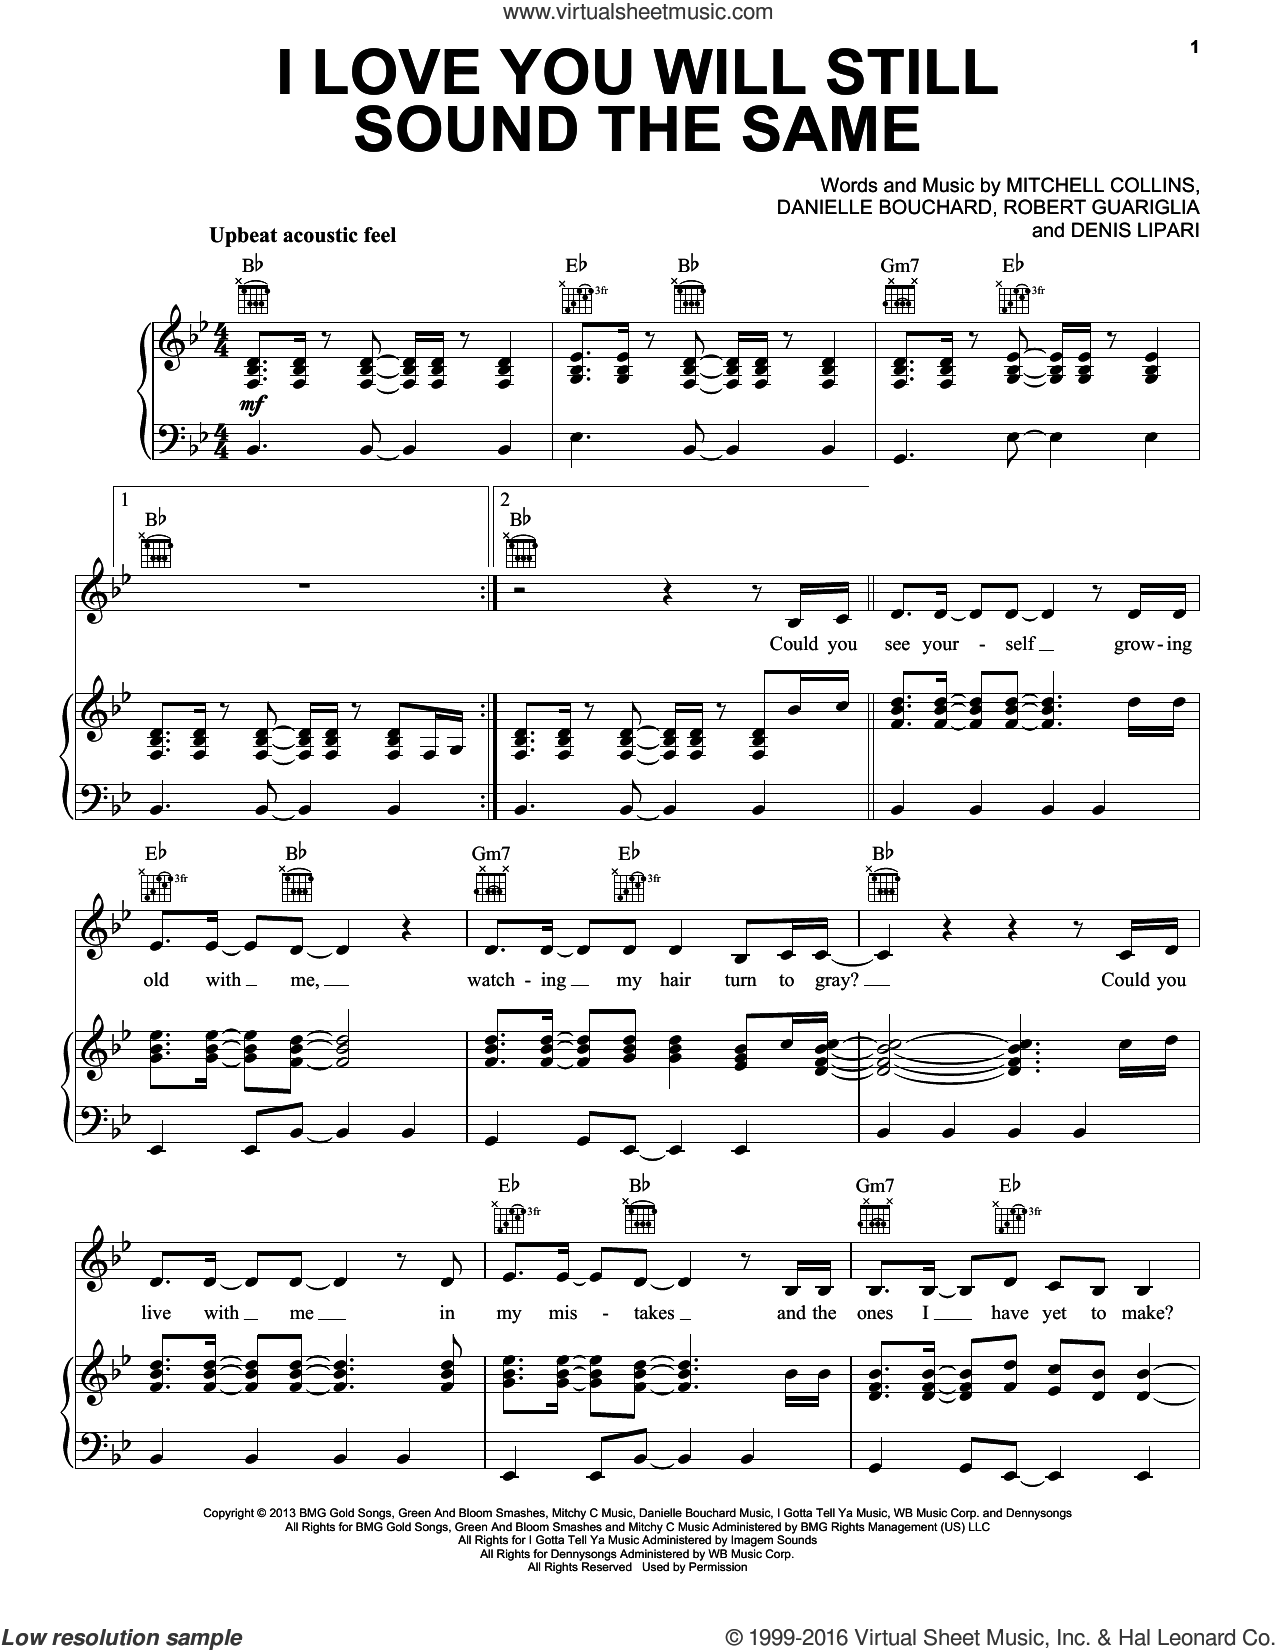 I Love You Will Still Sound The Same sheet music for voice, piano or guitar by Oh Honey, Danielle Bouchard, Denis Lipari, Mitchell Collins and Robert Guariglia, wedding score, intermediate skill level